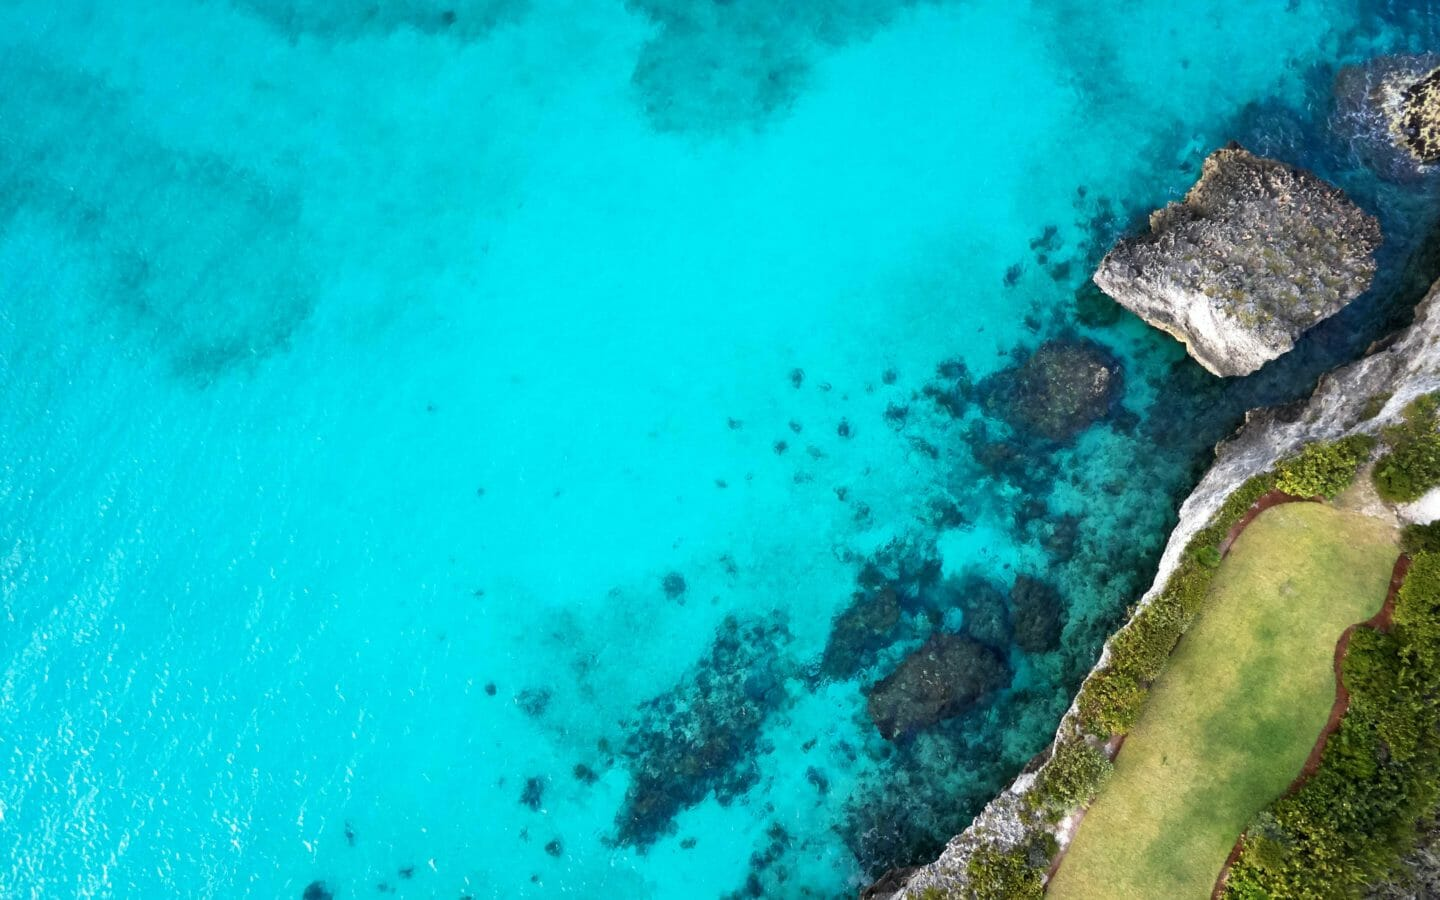 aerial photography of body of water by rock formation at daytime